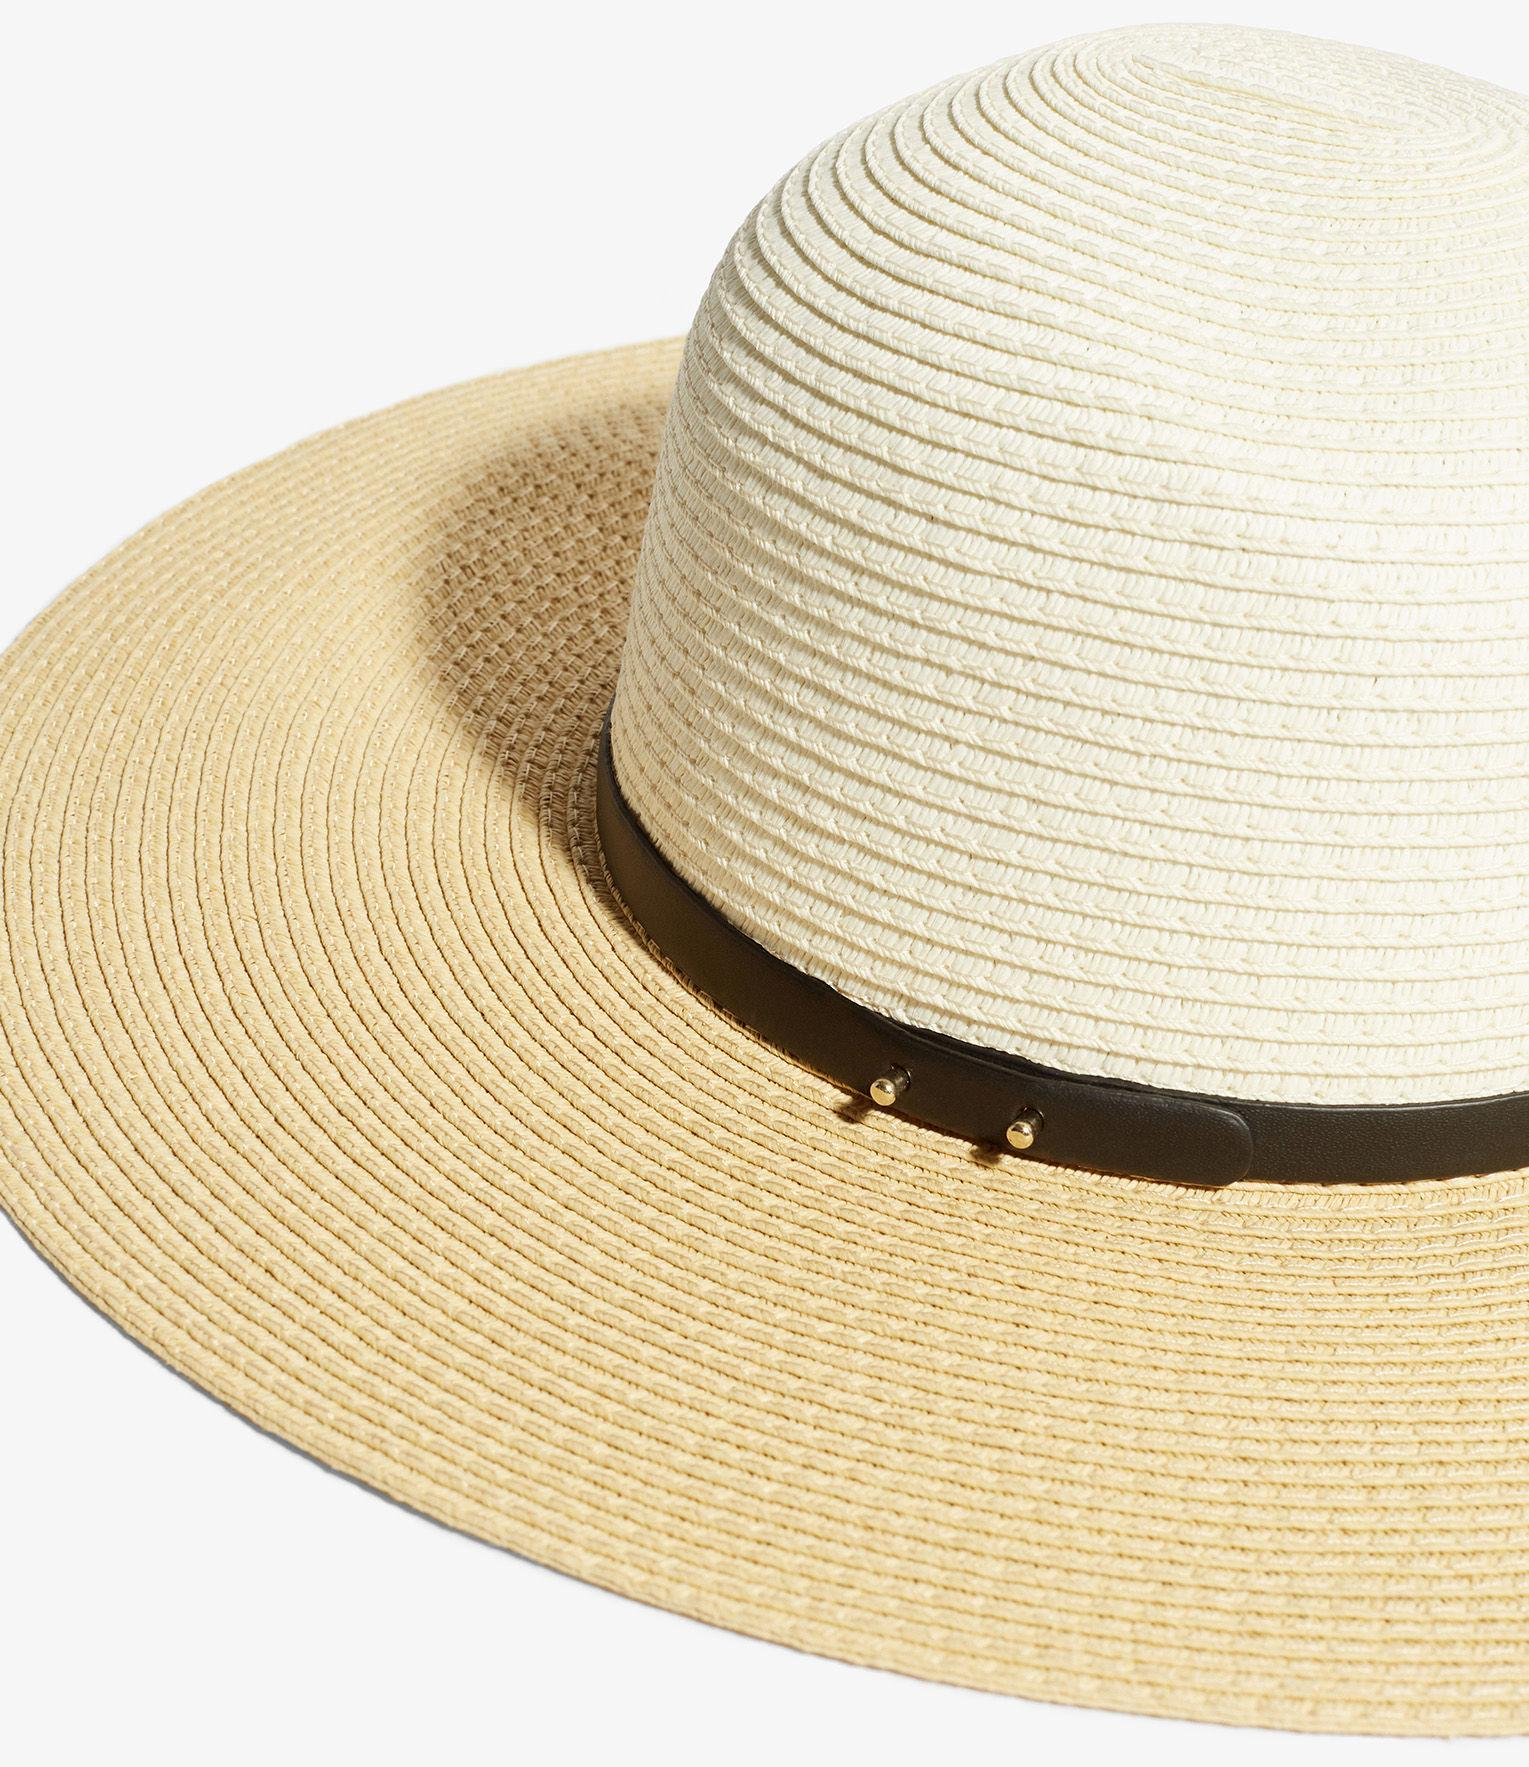 ... Natural Floppy Brimmed Hat - Lyst. View fullscreen f71d31b3ec03